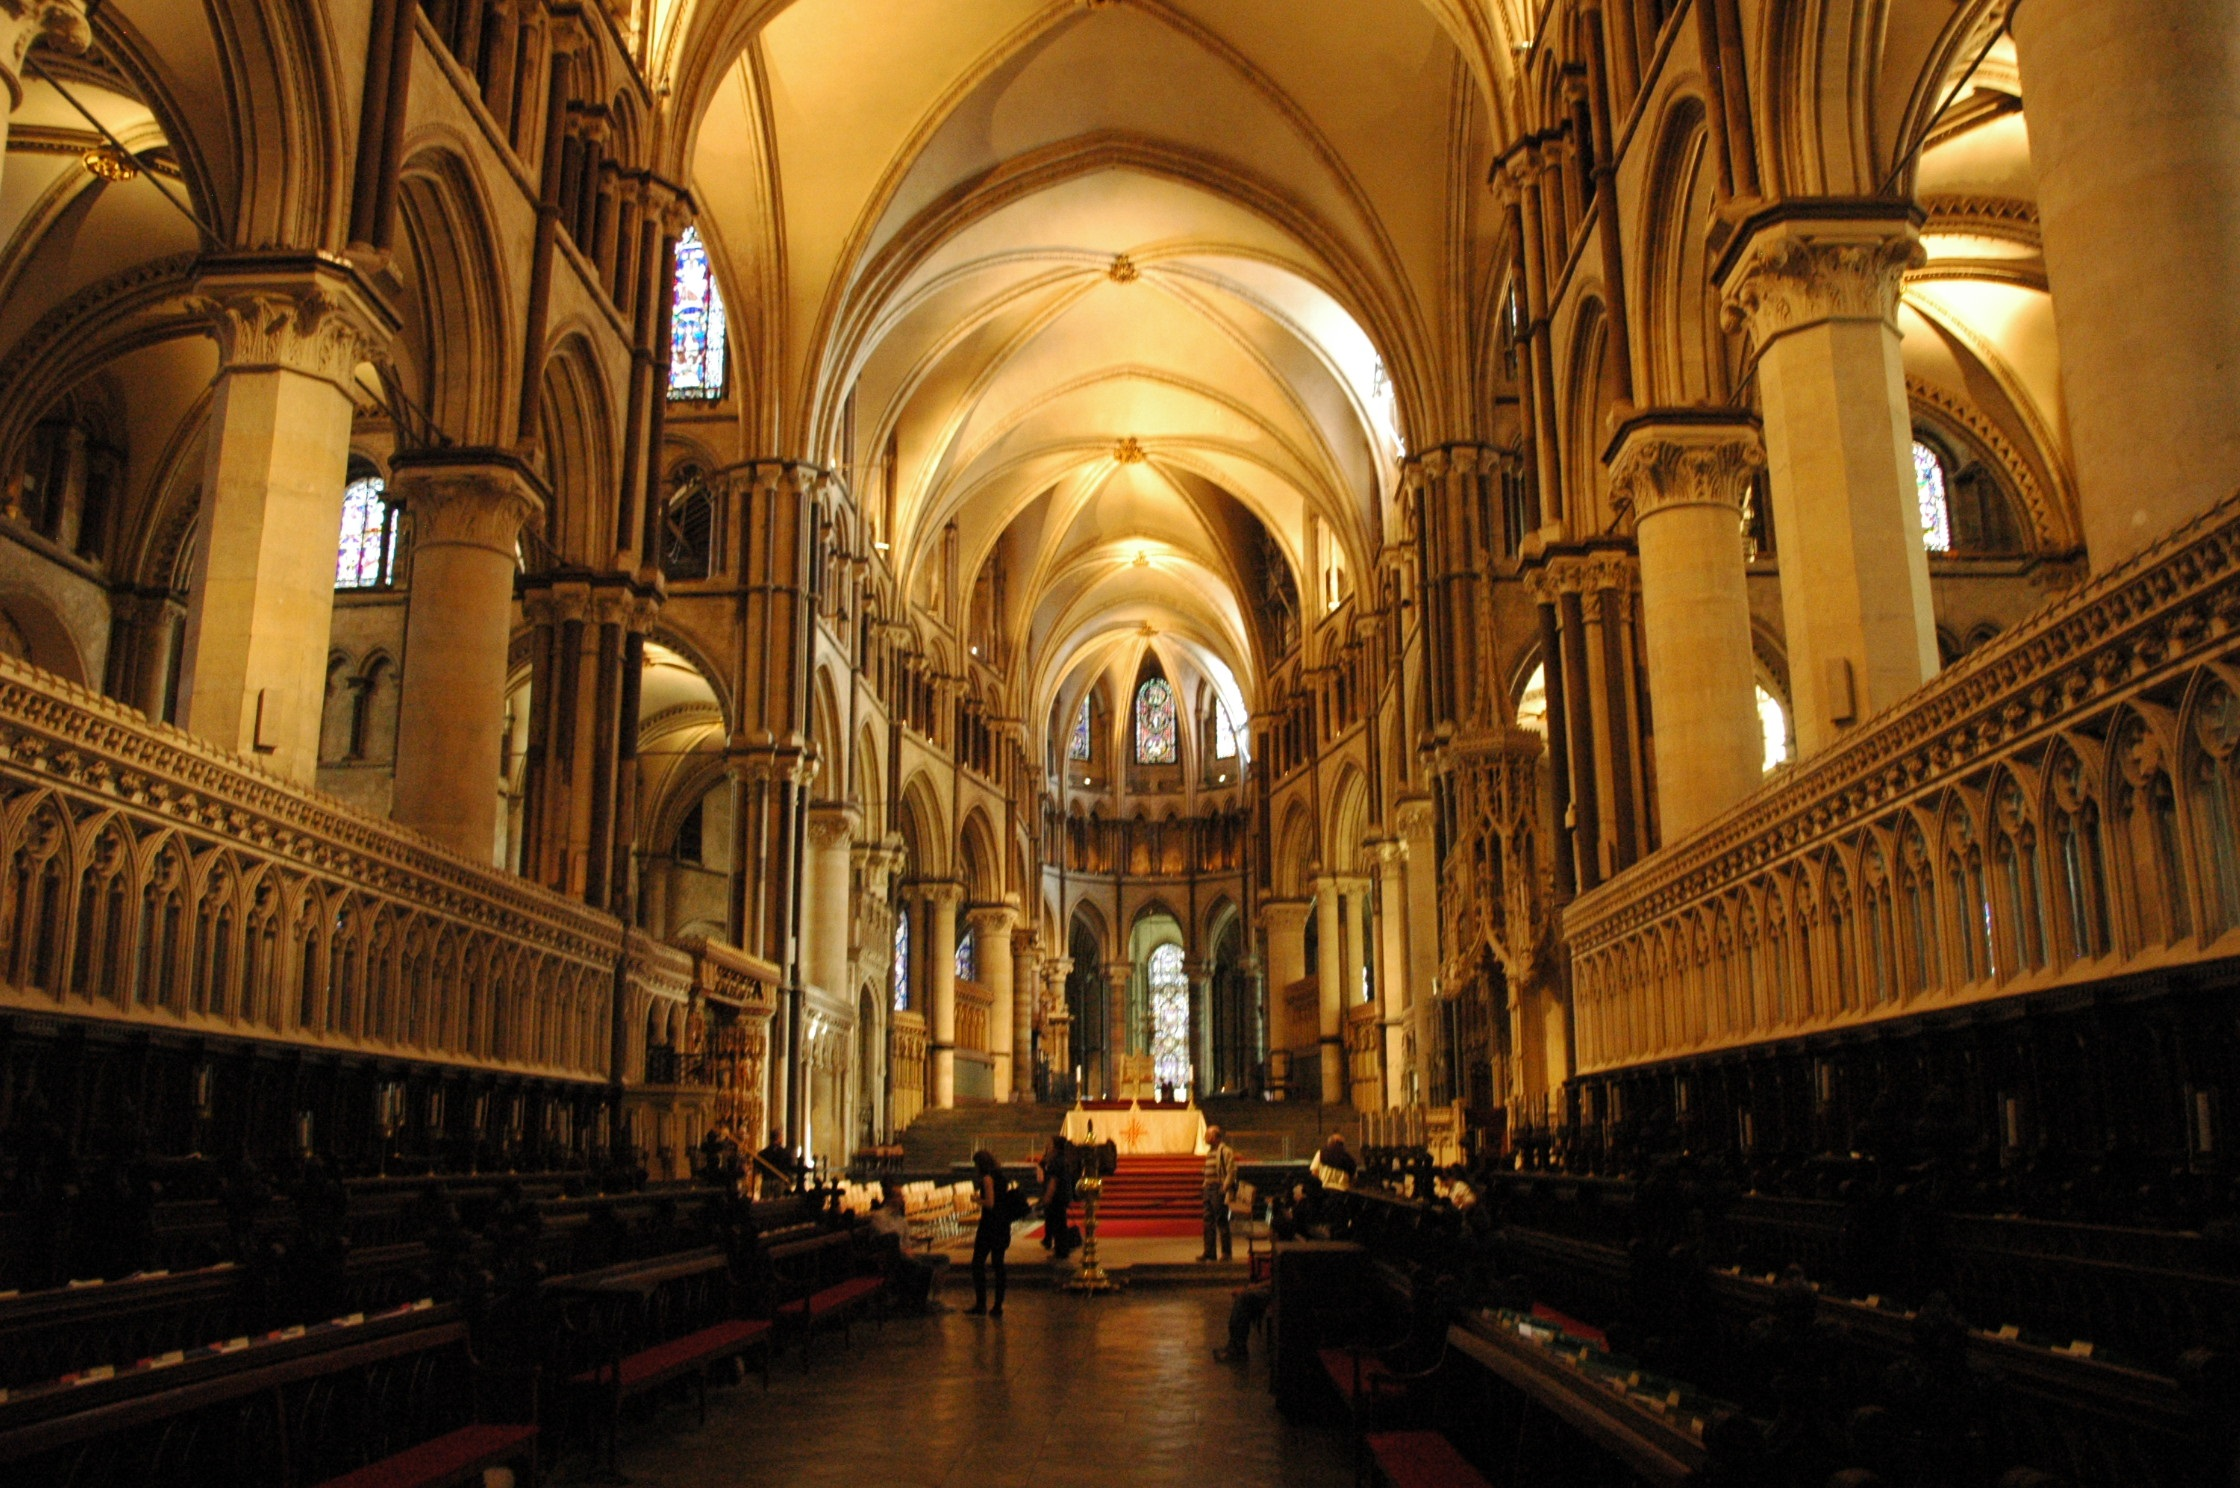 USED Canterbury cathedral view of the altar area